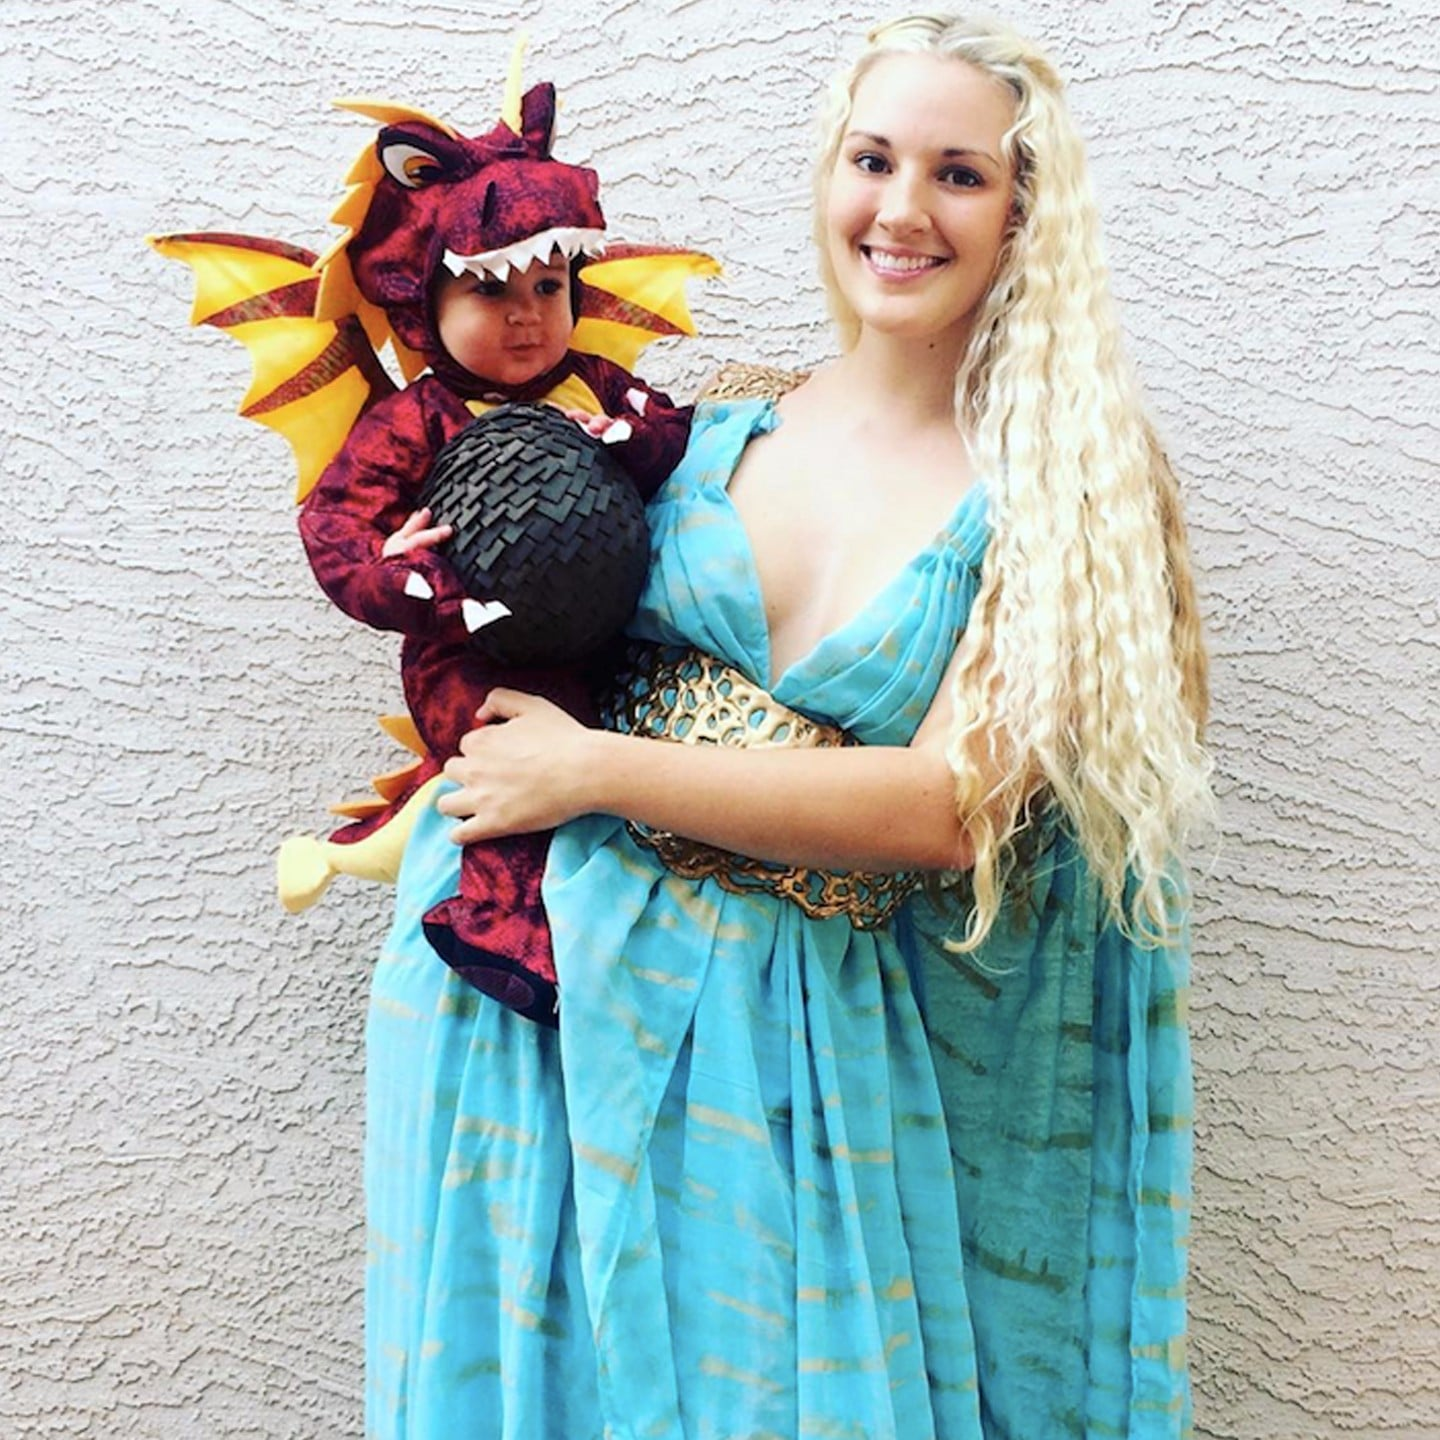 Halloween 2019 Costume Ideas For Girls.10 Clever Adorable Mother And Son Costume Ideas For